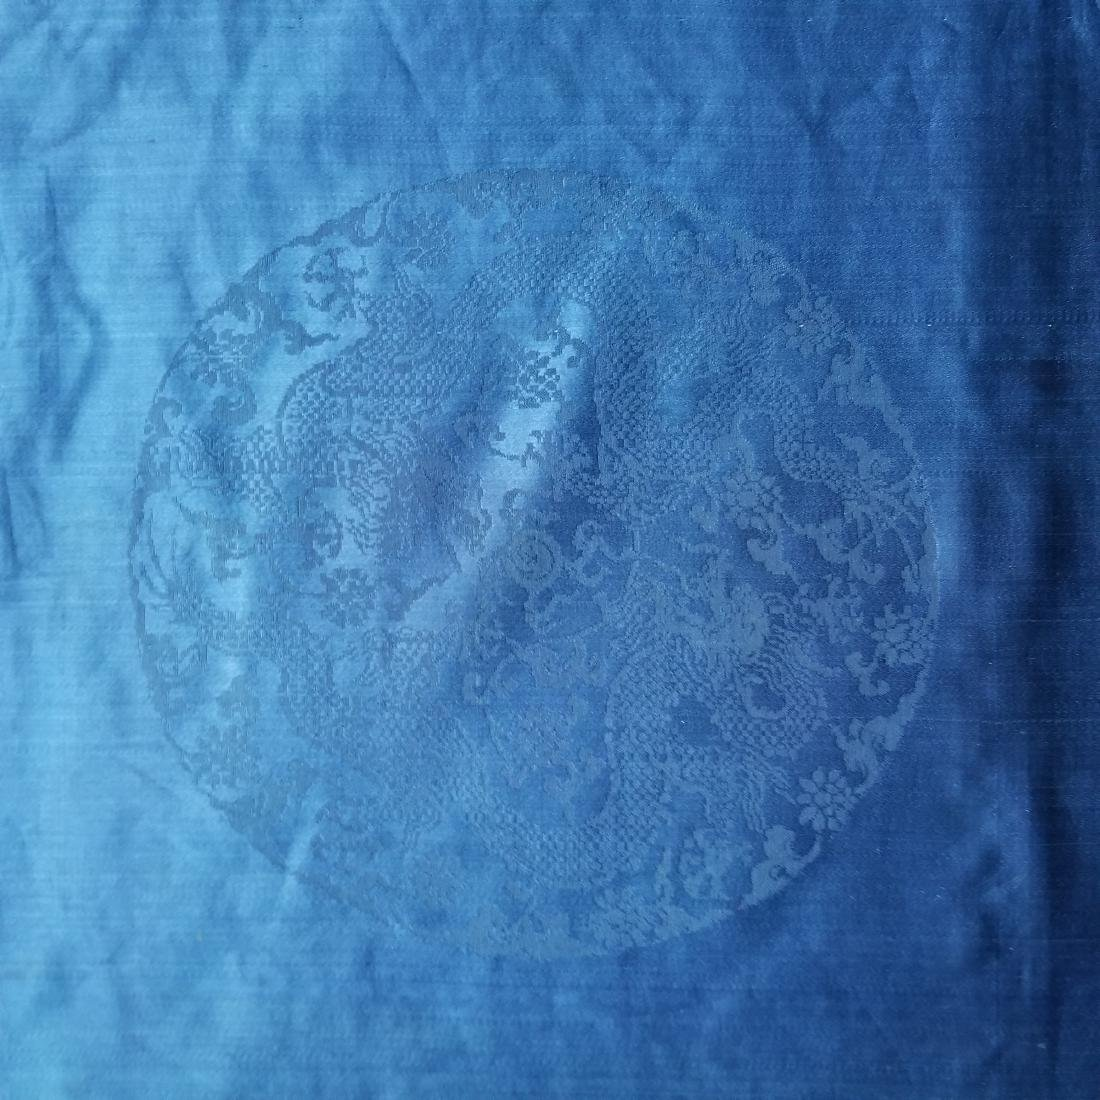 Antique Chinese Silk Robe with G T Marsh & Co. Stamp - 9